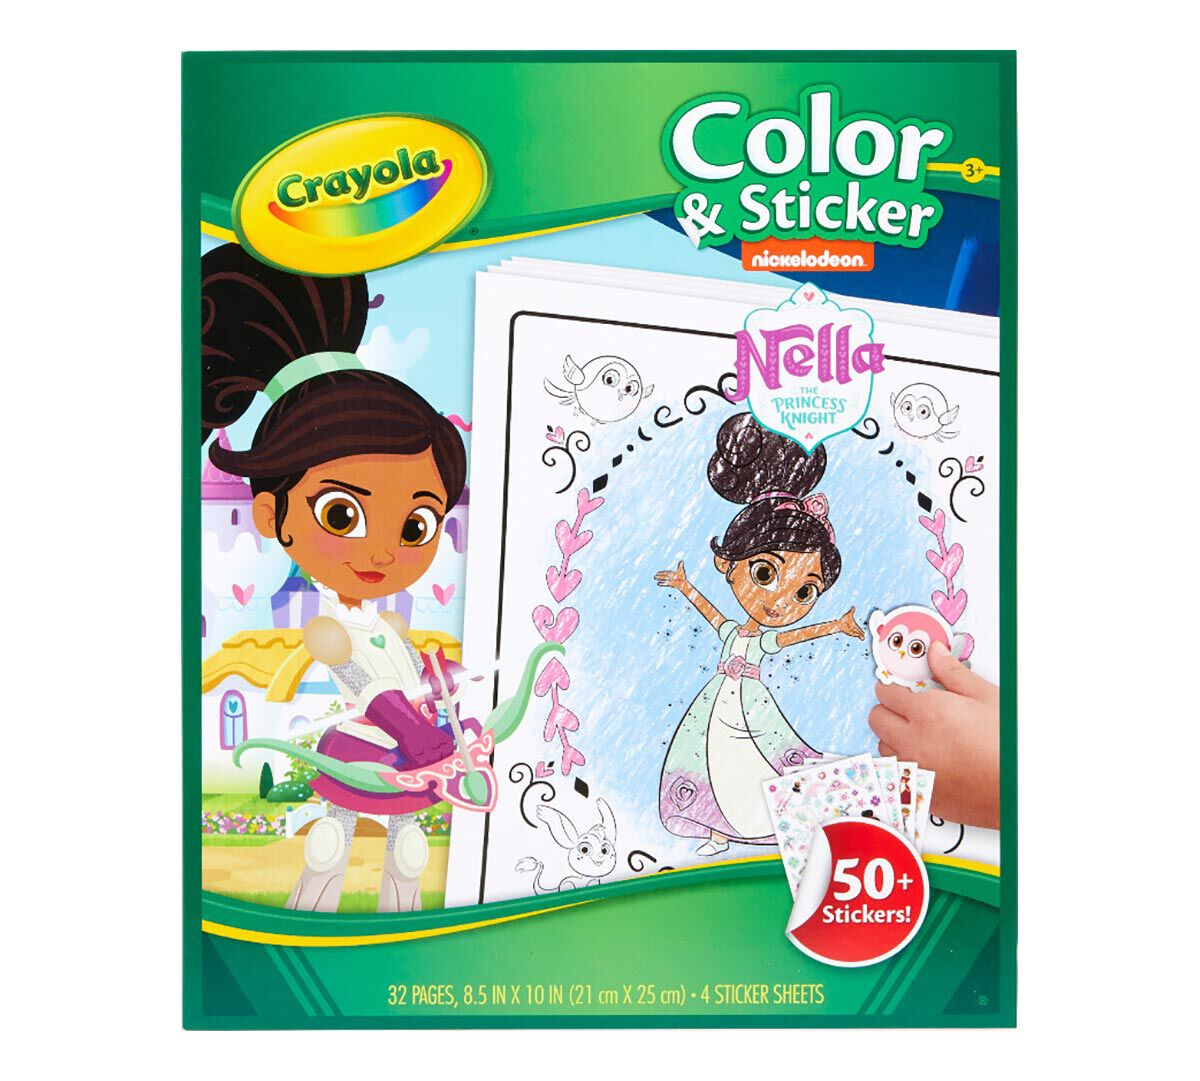 Crayola Coloring Pages and Stickers, Nella The Princess Knight, Gift for  Girls, Ages 3, 4, 5, 6 | Crayola